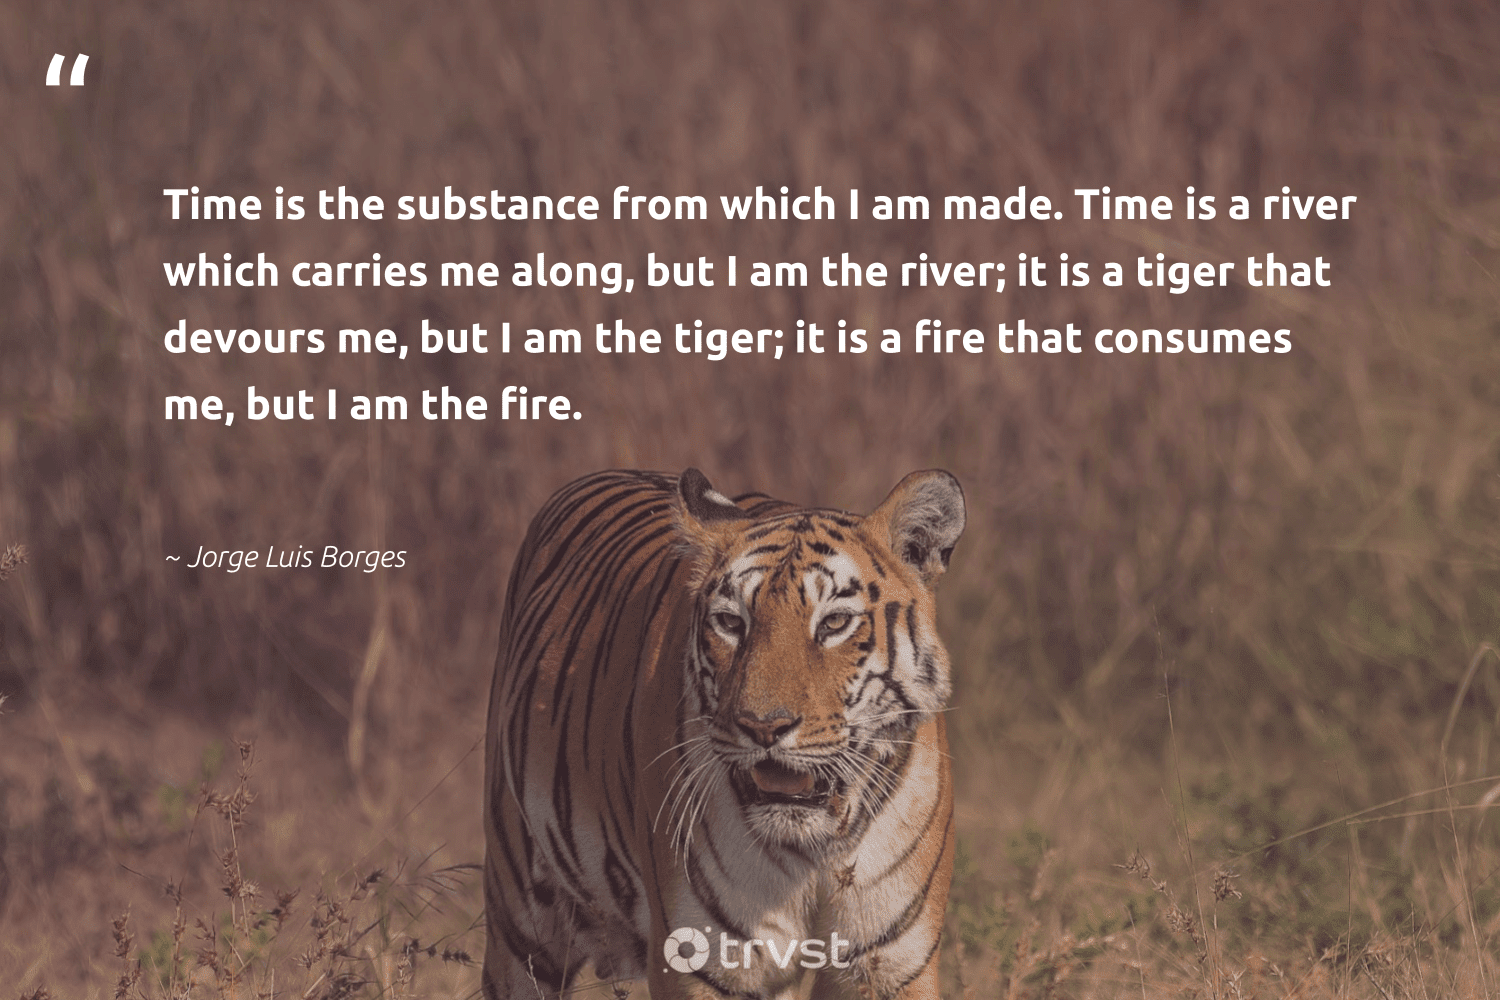 """""""Time is the substance from which I am made. Time is a river which carries me along, but I am the river; it is a tiger that devours me, but I am the tiger; it is a fire that consumes me, but I am the fire.""""  - Jorge Luis Borges #trvst #quotes #river #tiger #water #protectnature #environmentallyfriendly #collectiveaction #oceanpollution #splendidanimals #volunteer #bethechange"""